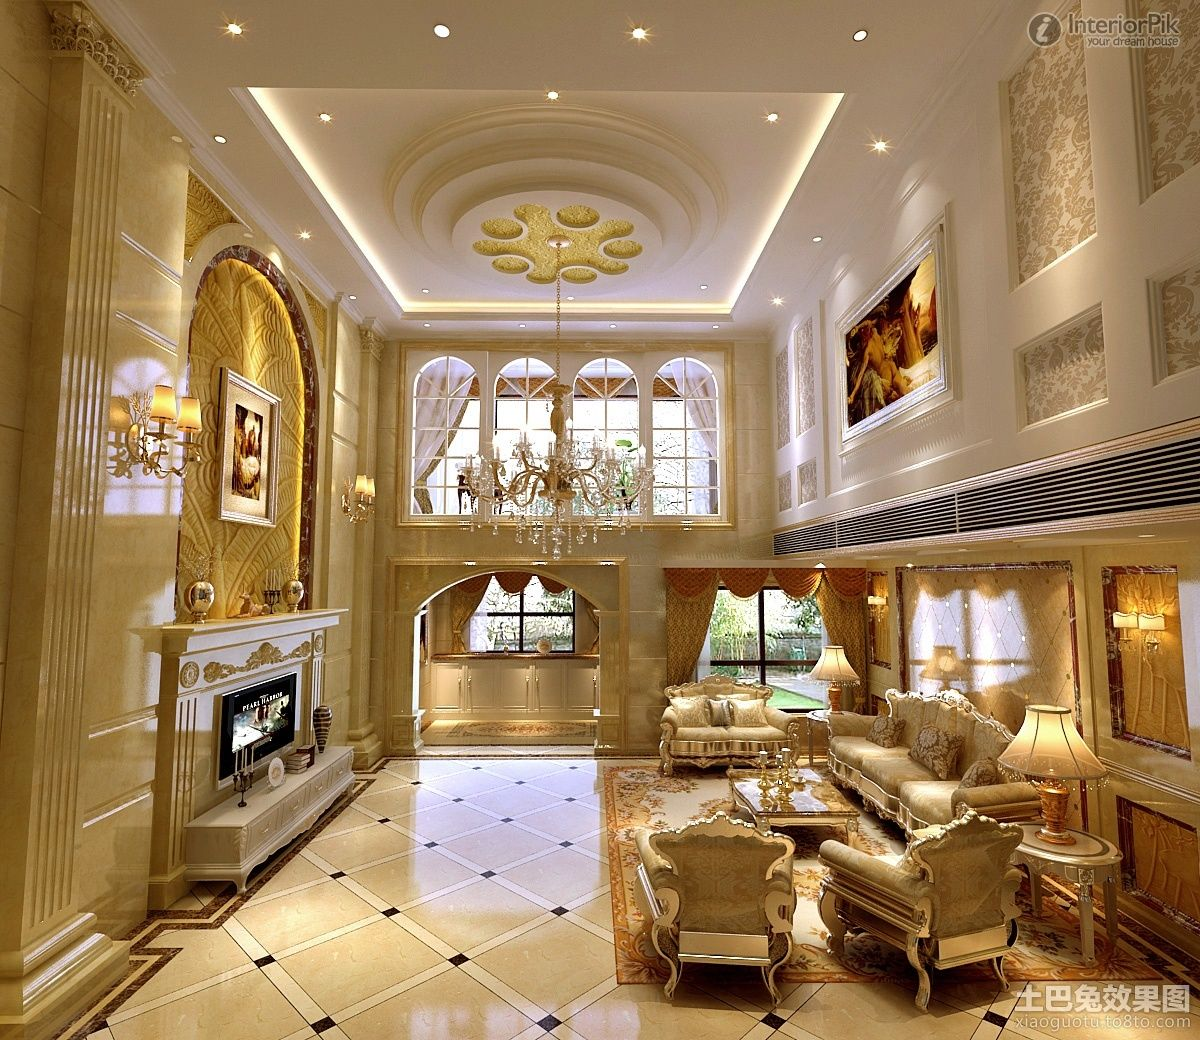 Home Design Ideas Classy: Prepossessing Luxury Modern Home False Ceiling Decorating